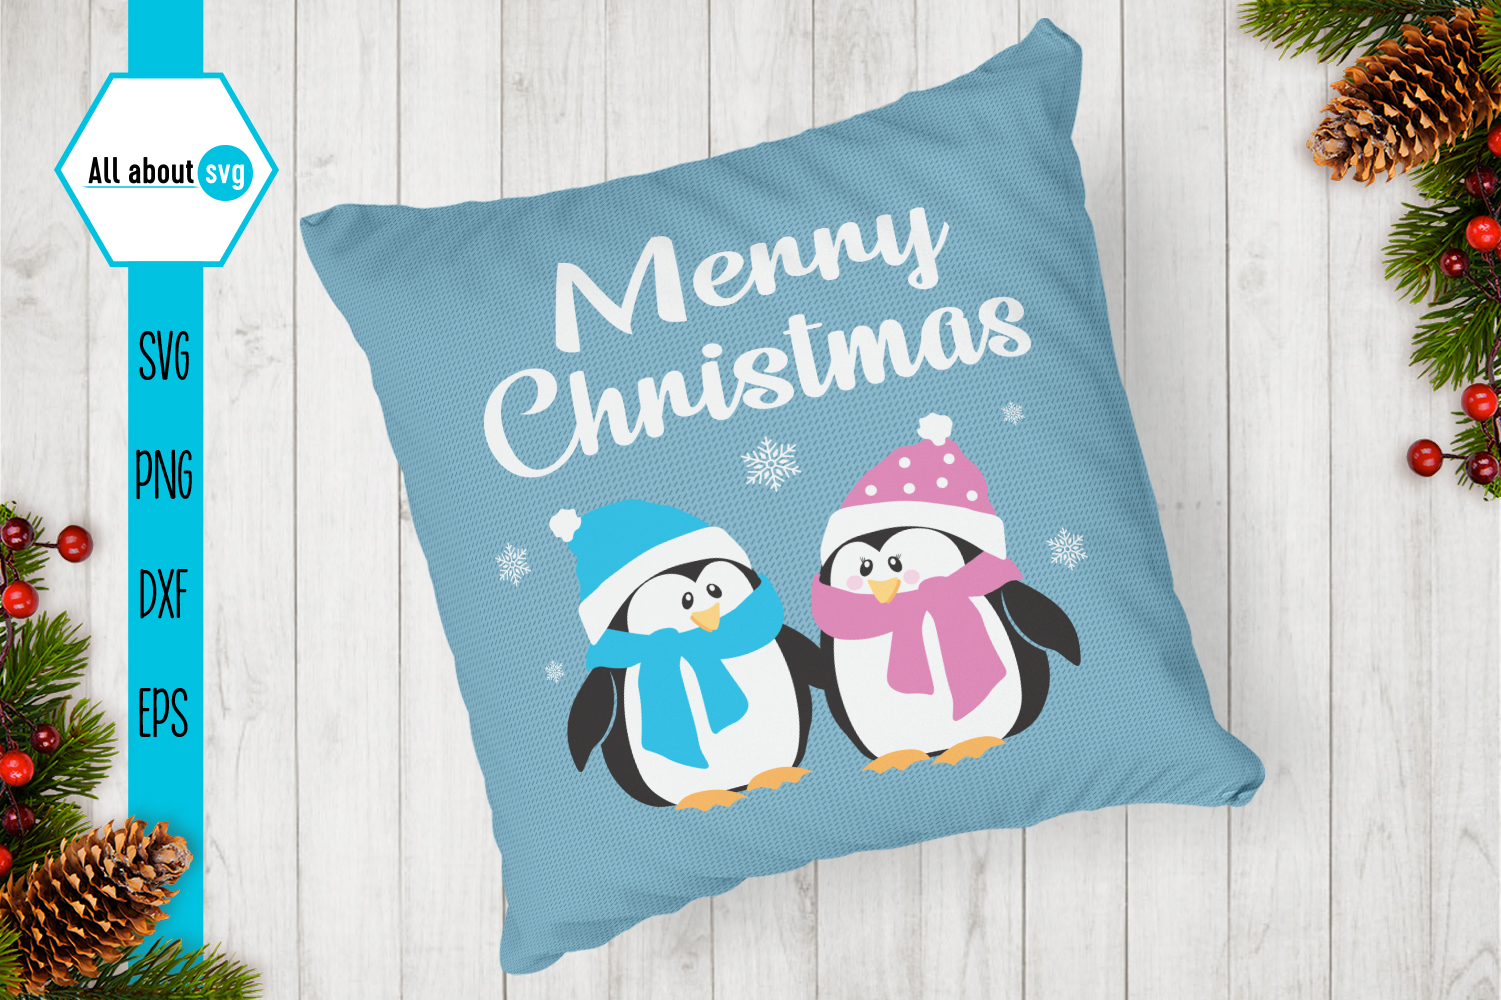 Merry Christmas Penguins Svg example image 3